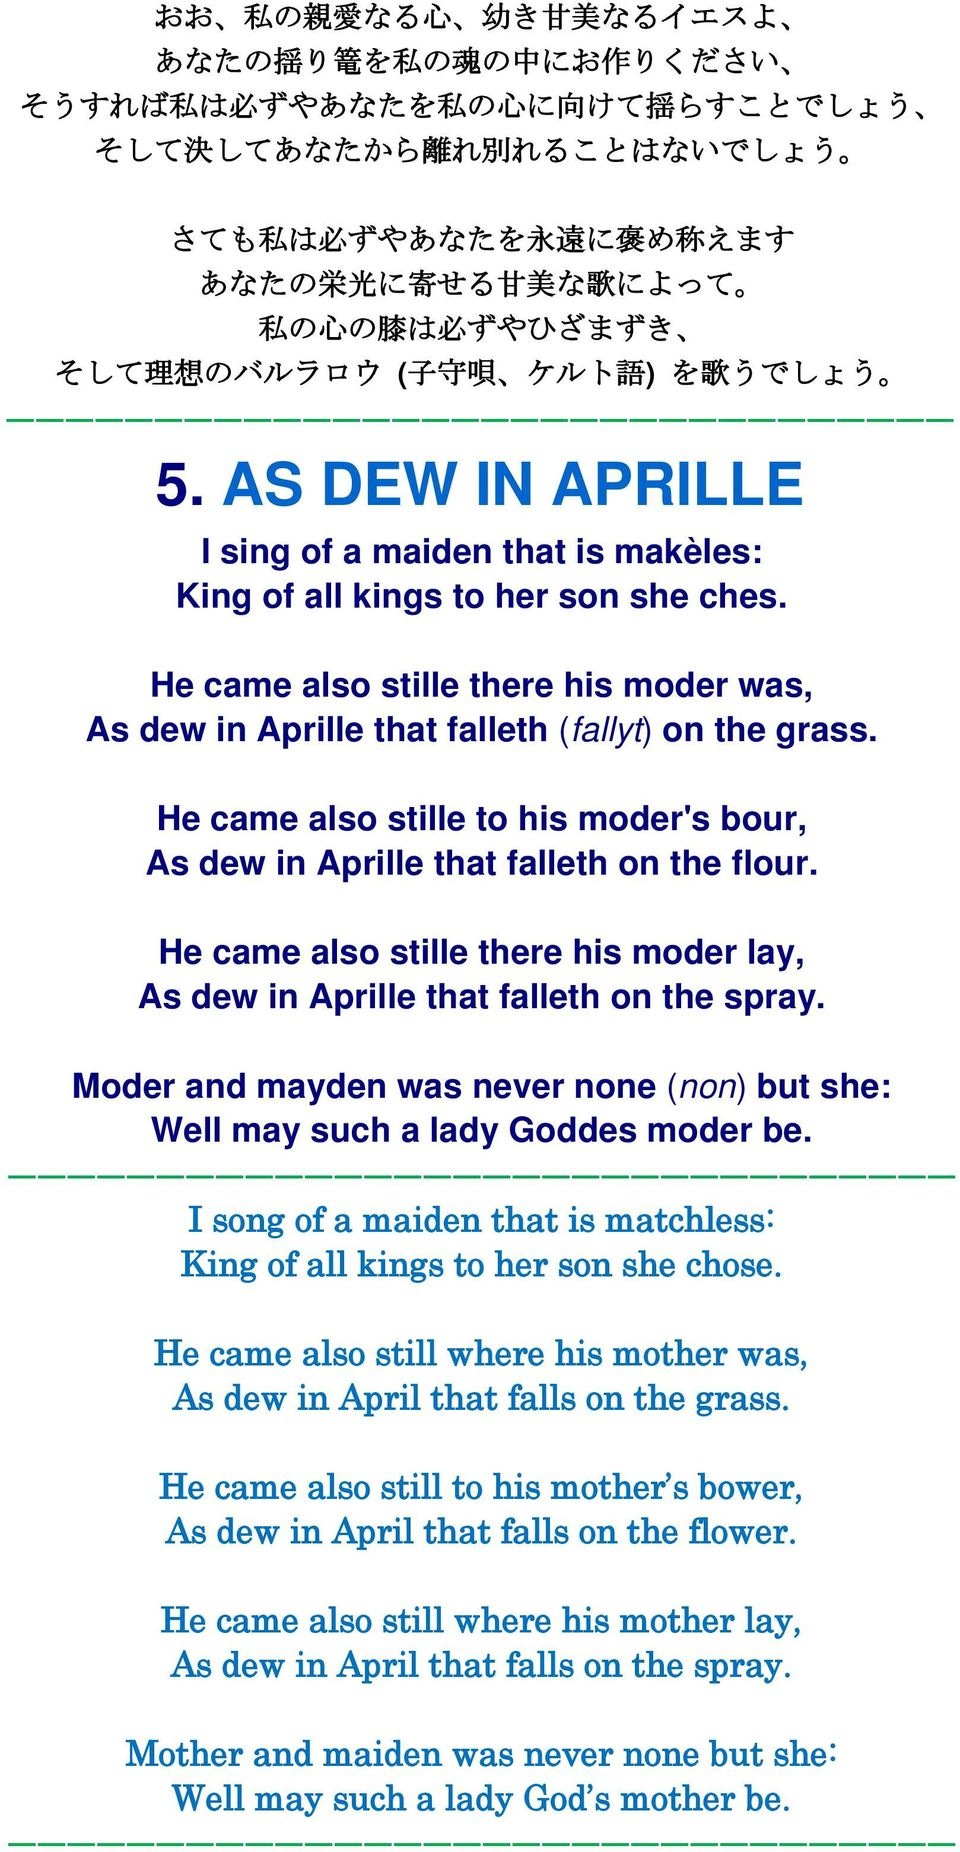 He came also stille there his moder was, As dew in Aprille that falleth (fallyt) on the grass. He came also stille to his moder's bour, As dew in Aprille that falleth on the flour.